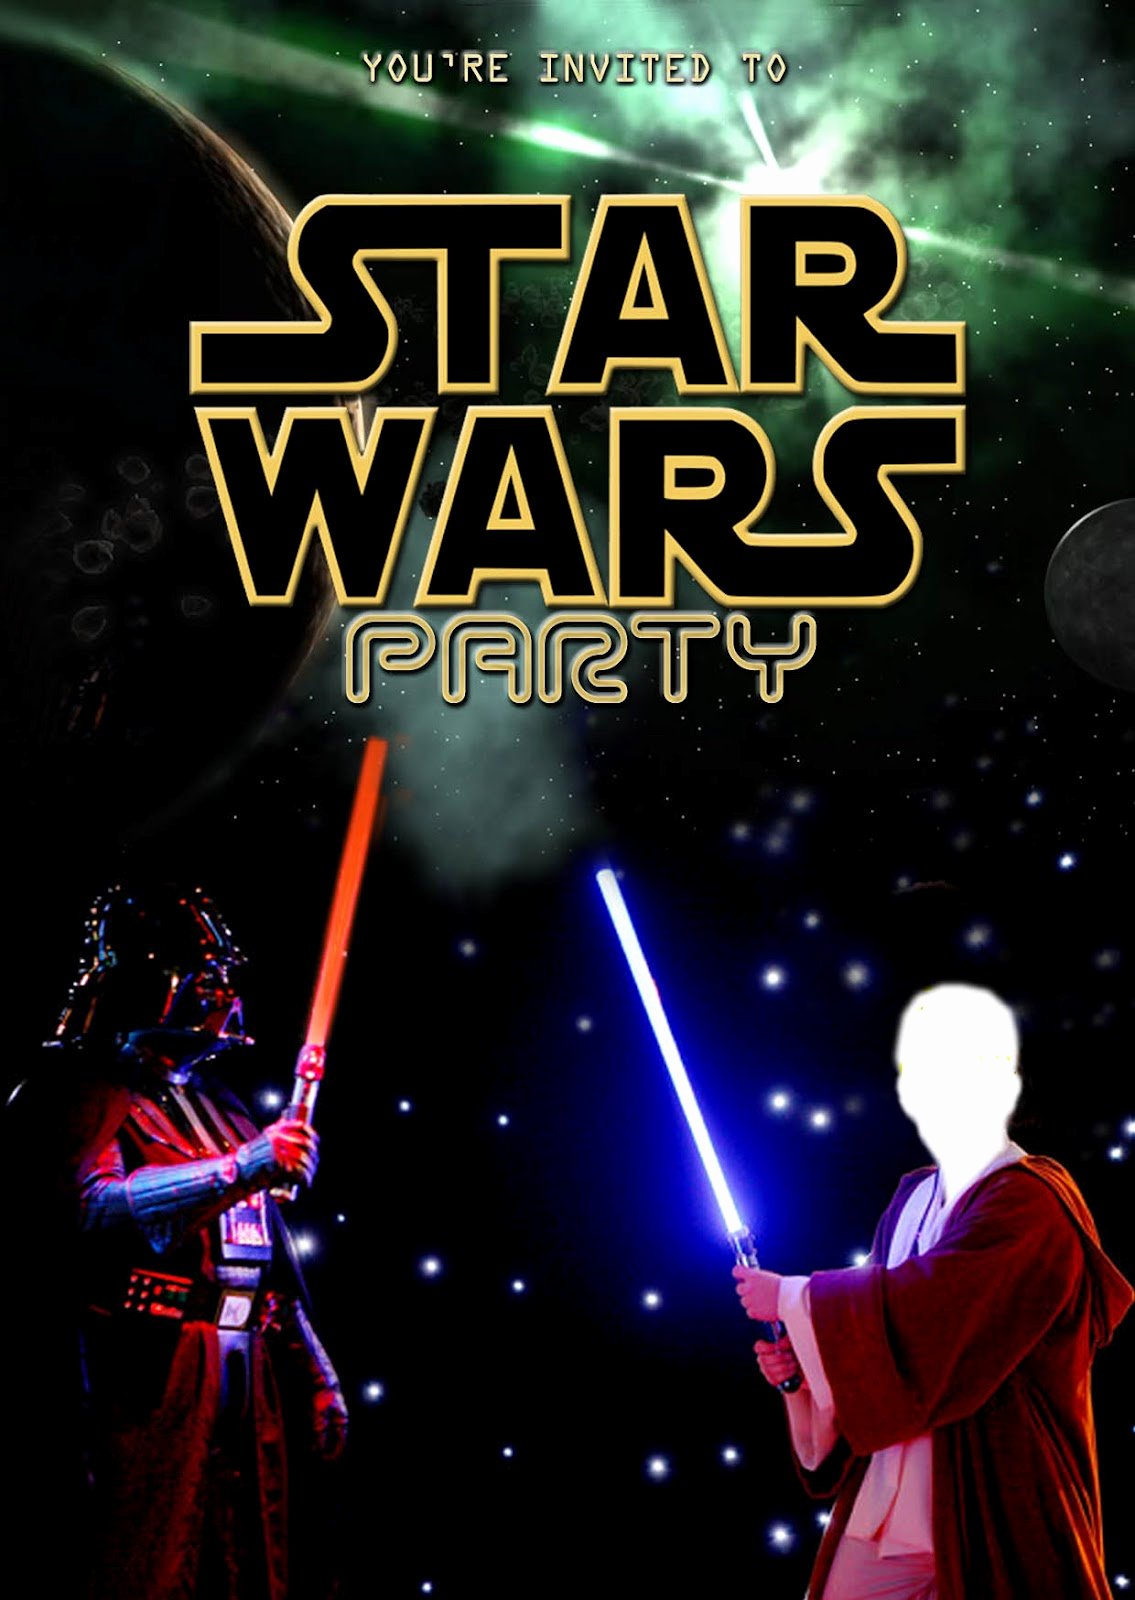 Star Wars Printable Birthday Invitations Inspirational Free Kids Party Invitations Star Wars Party Invitation